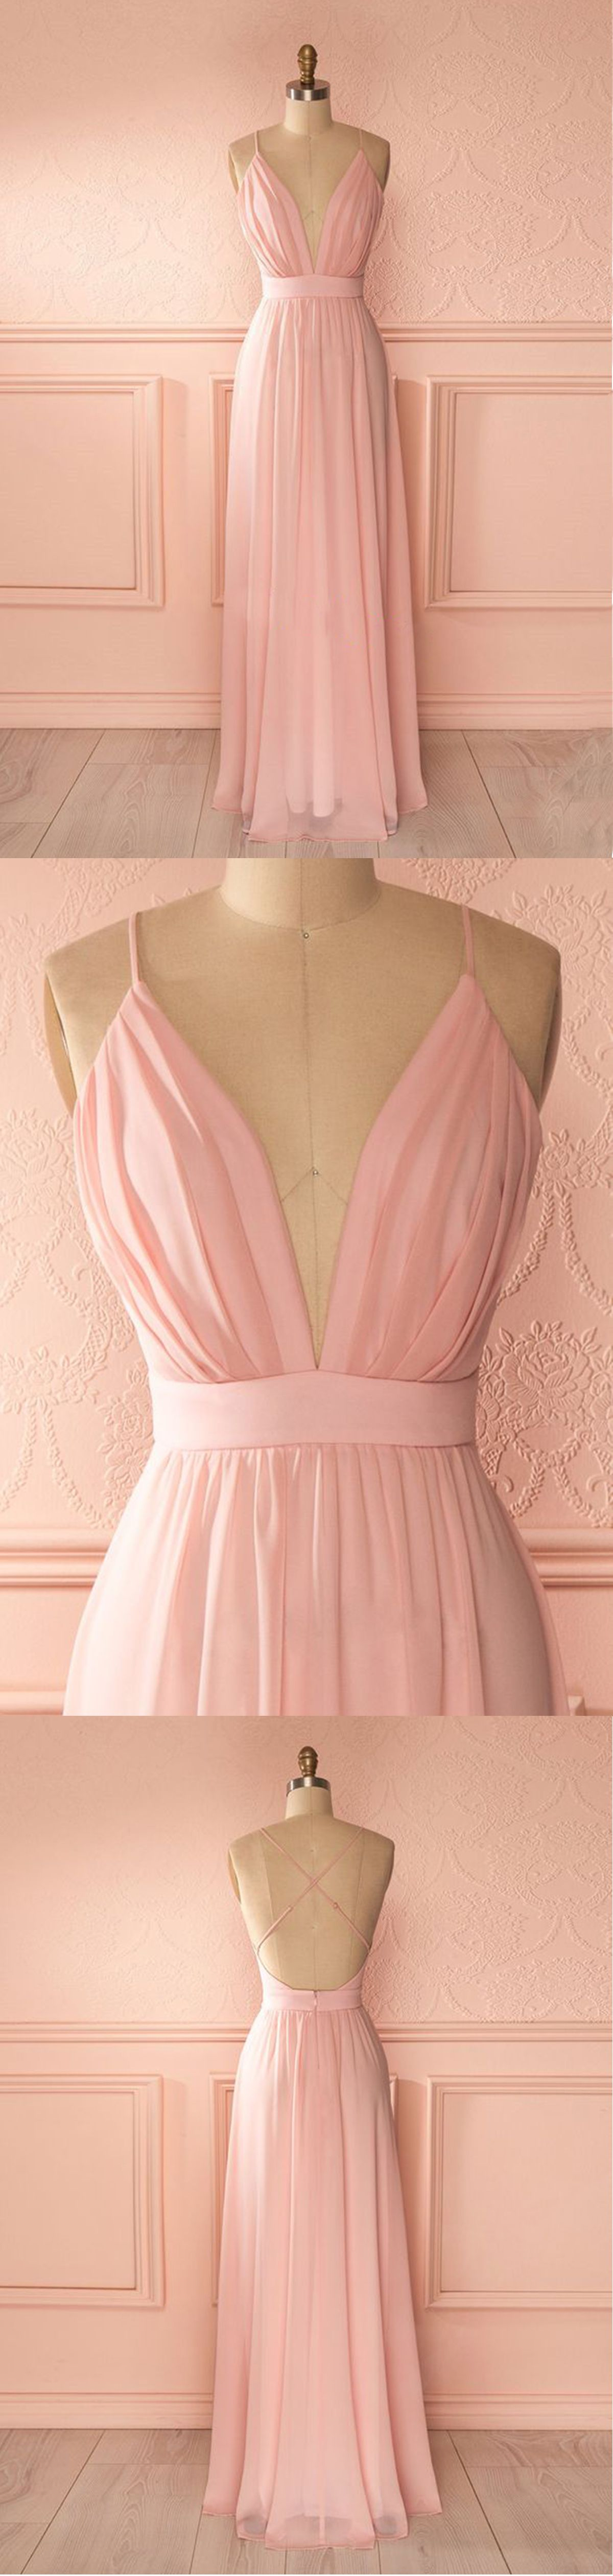 Chiffon prom dresses cute pink long prom dress with straps prom